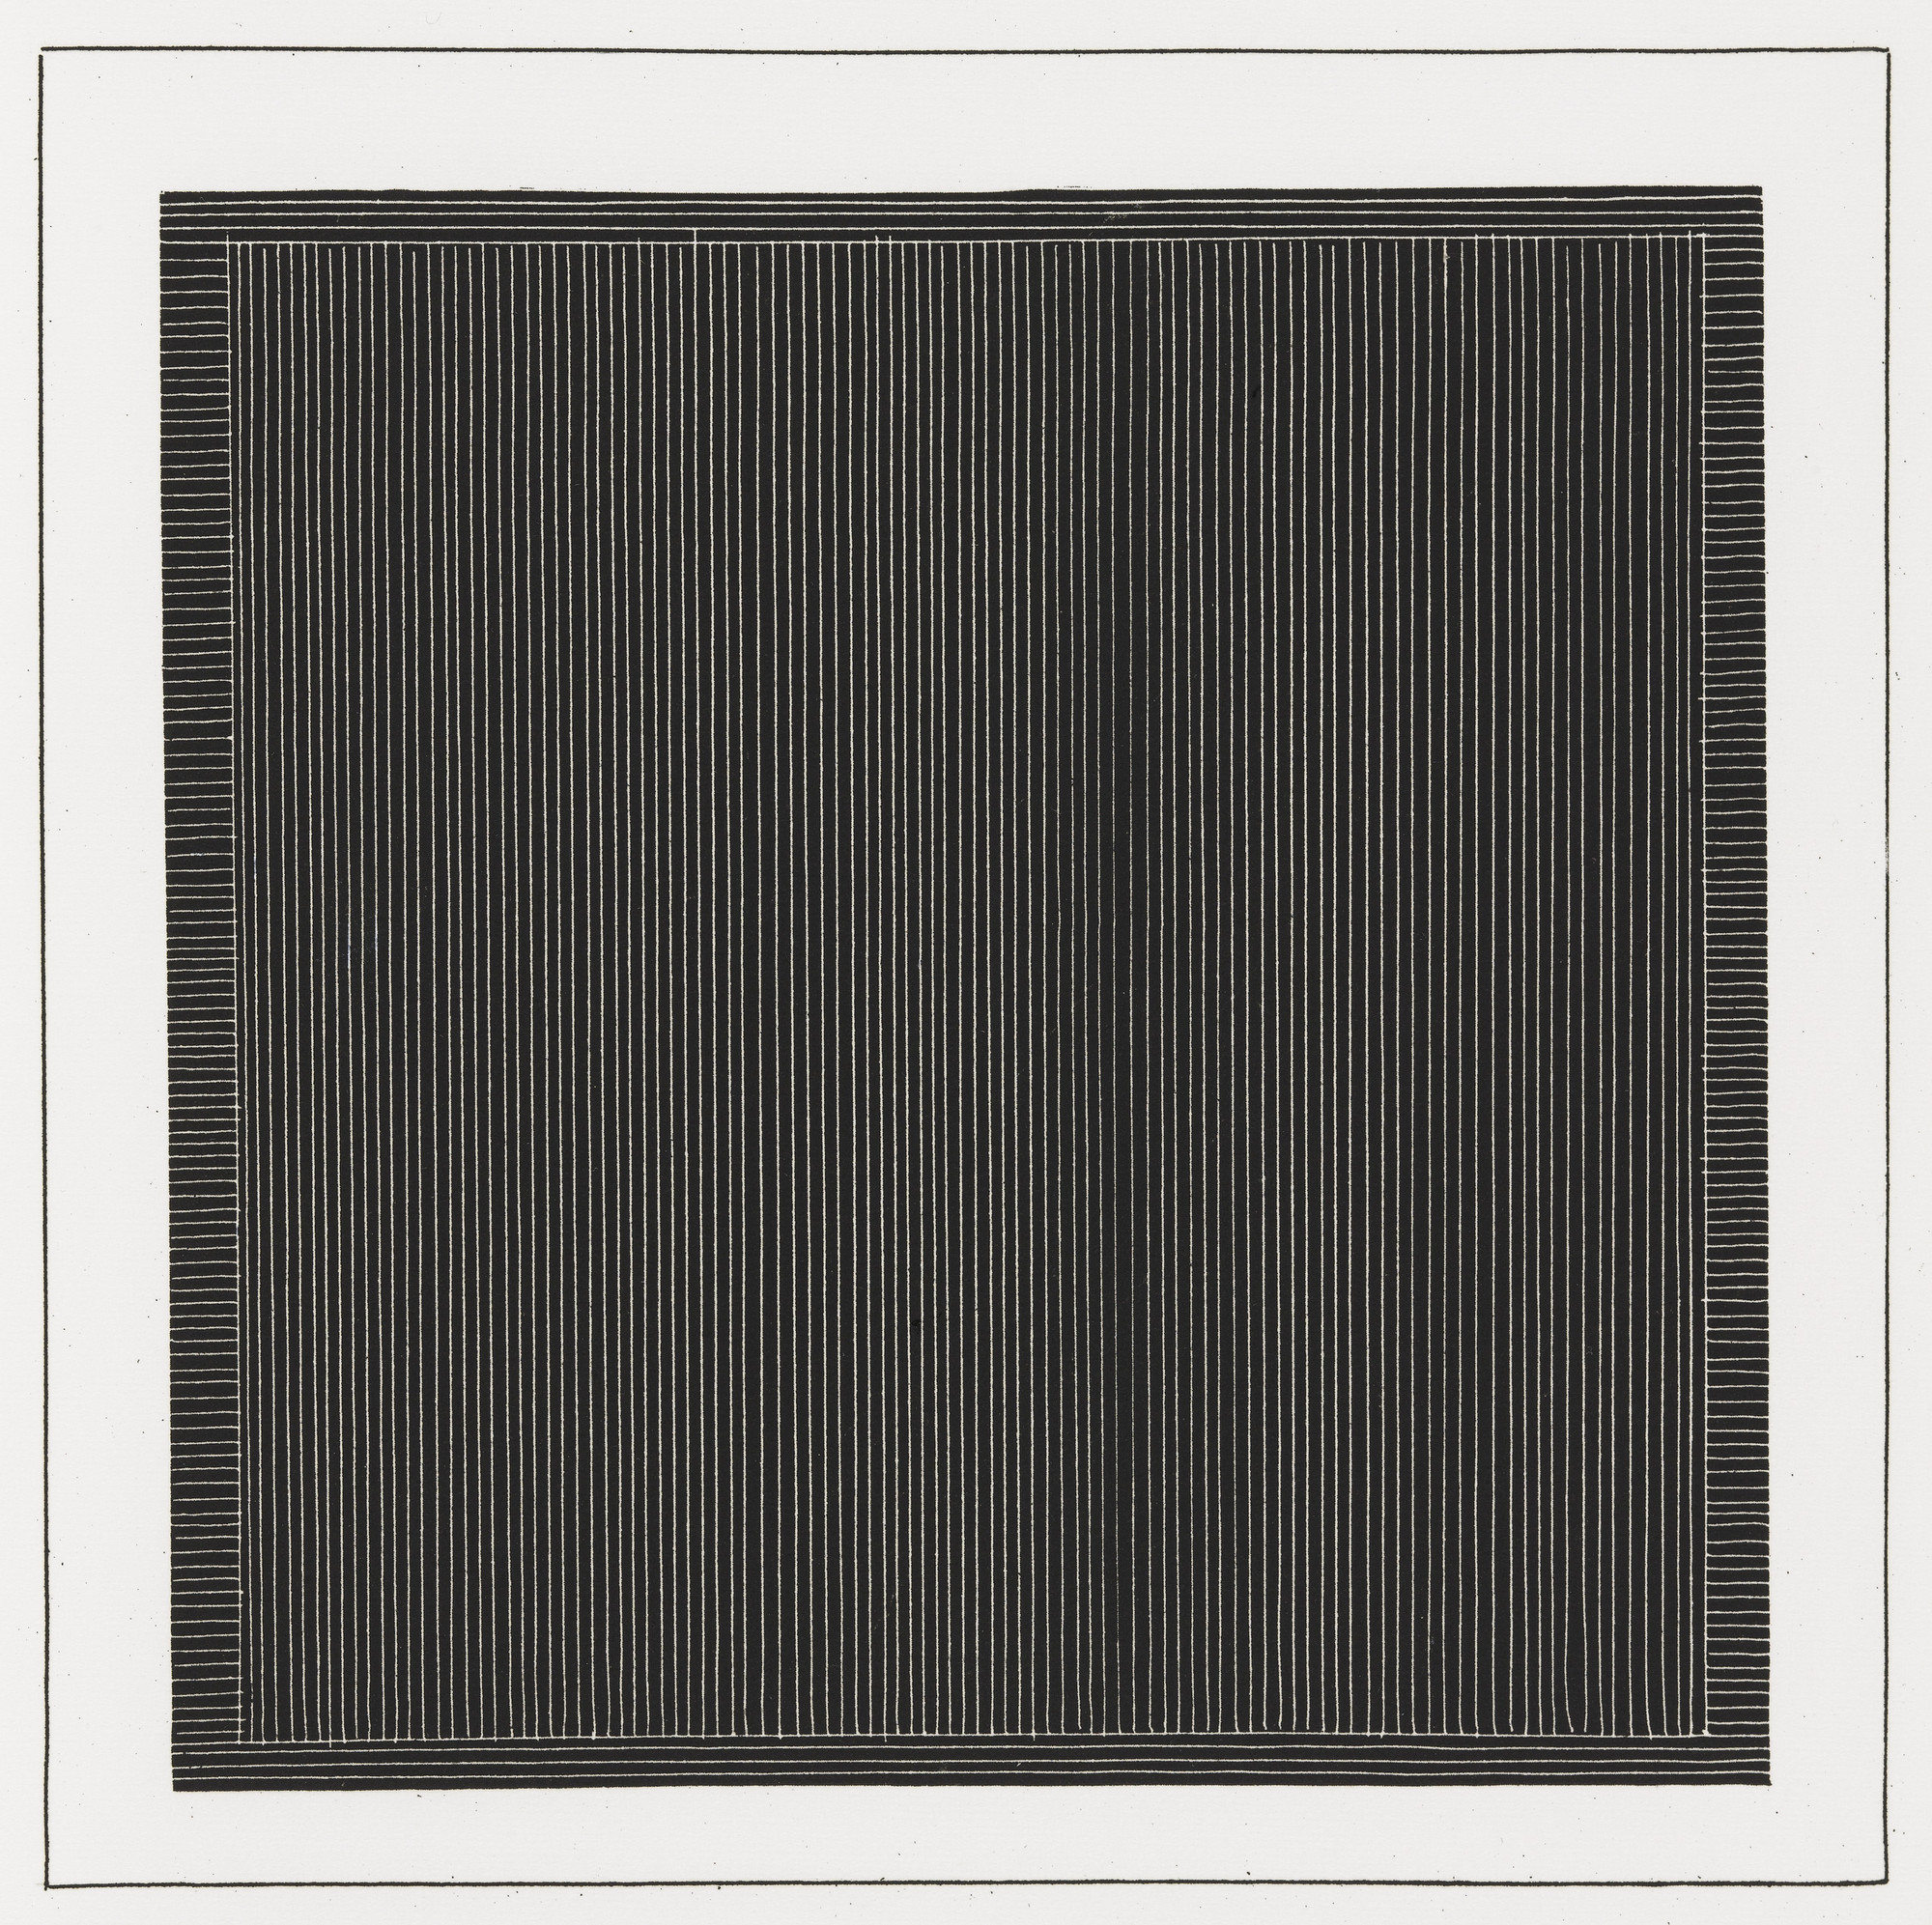 Sol LeWitt. Plate (folio 2) from Six Geometric Figures and All Their Combinations, Volume I. 1980